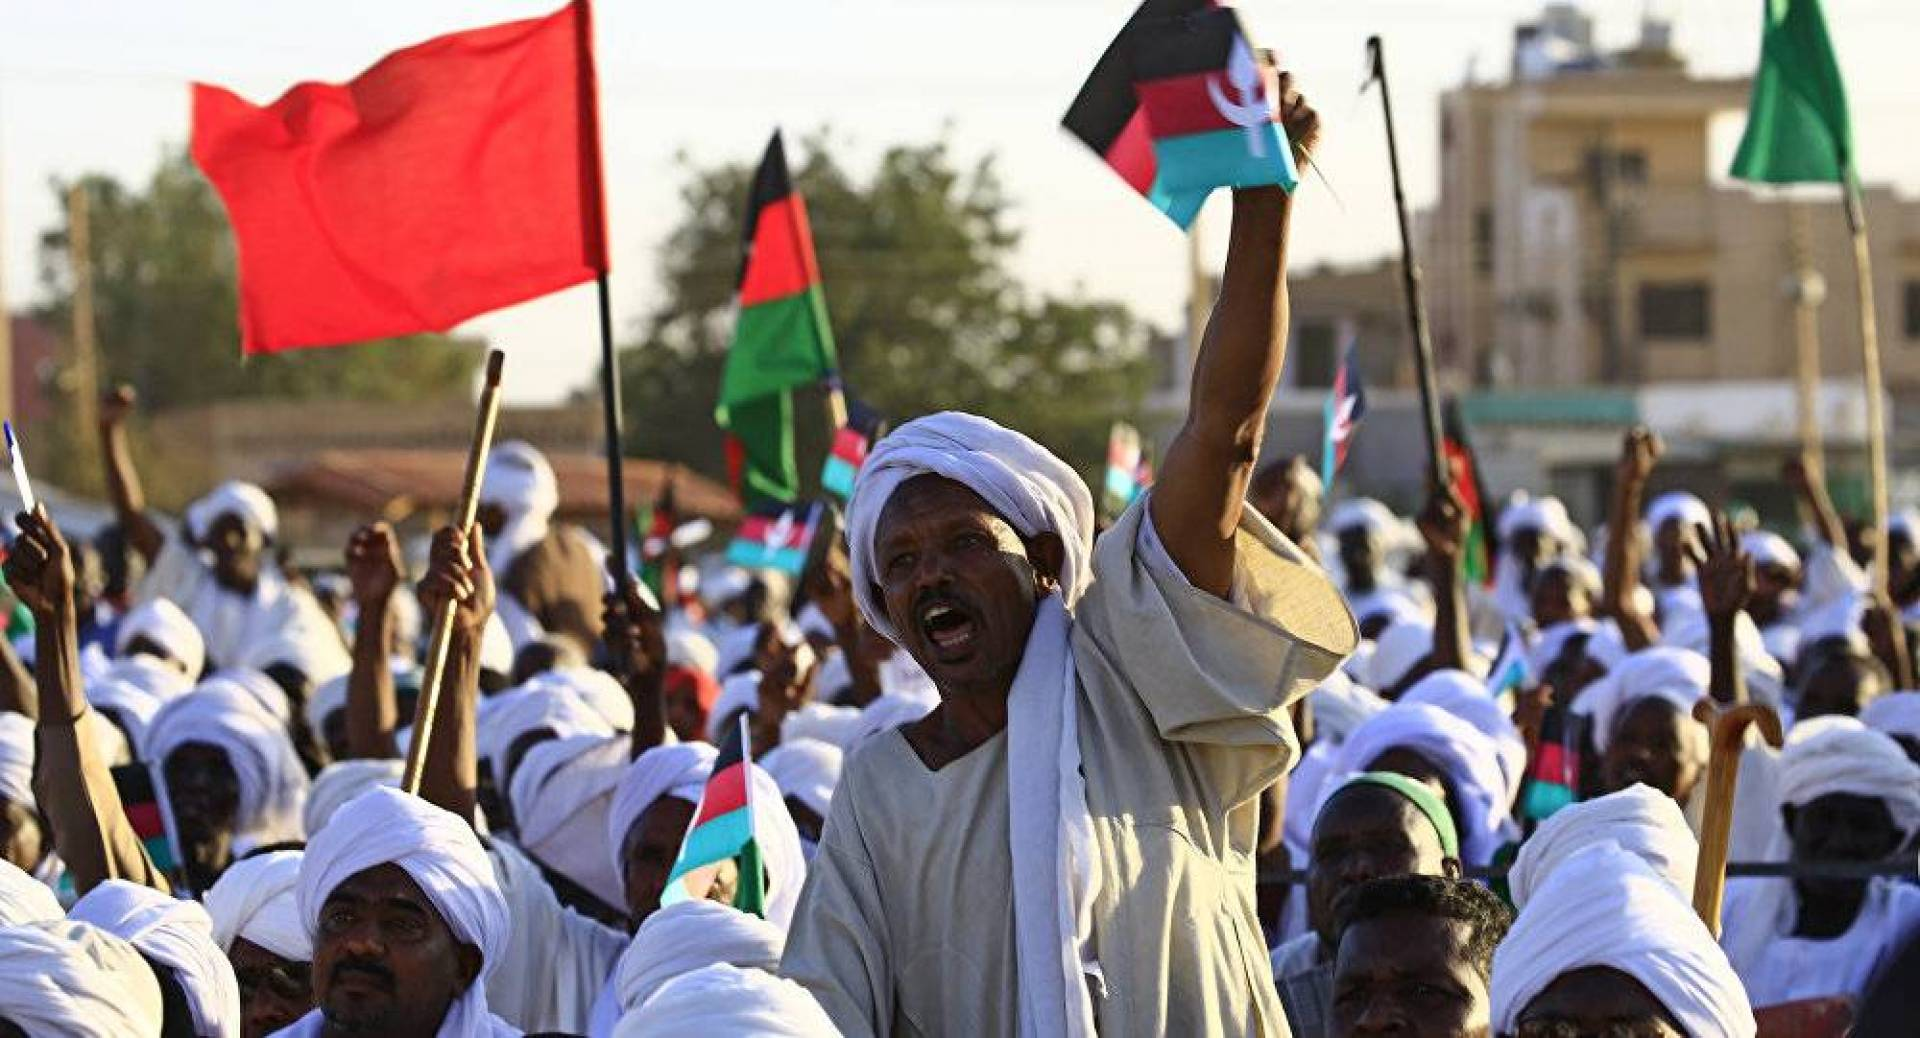 Sudan, On The Long Road To Freedom Or Anarchy?, by Morak Babajide-Alabi